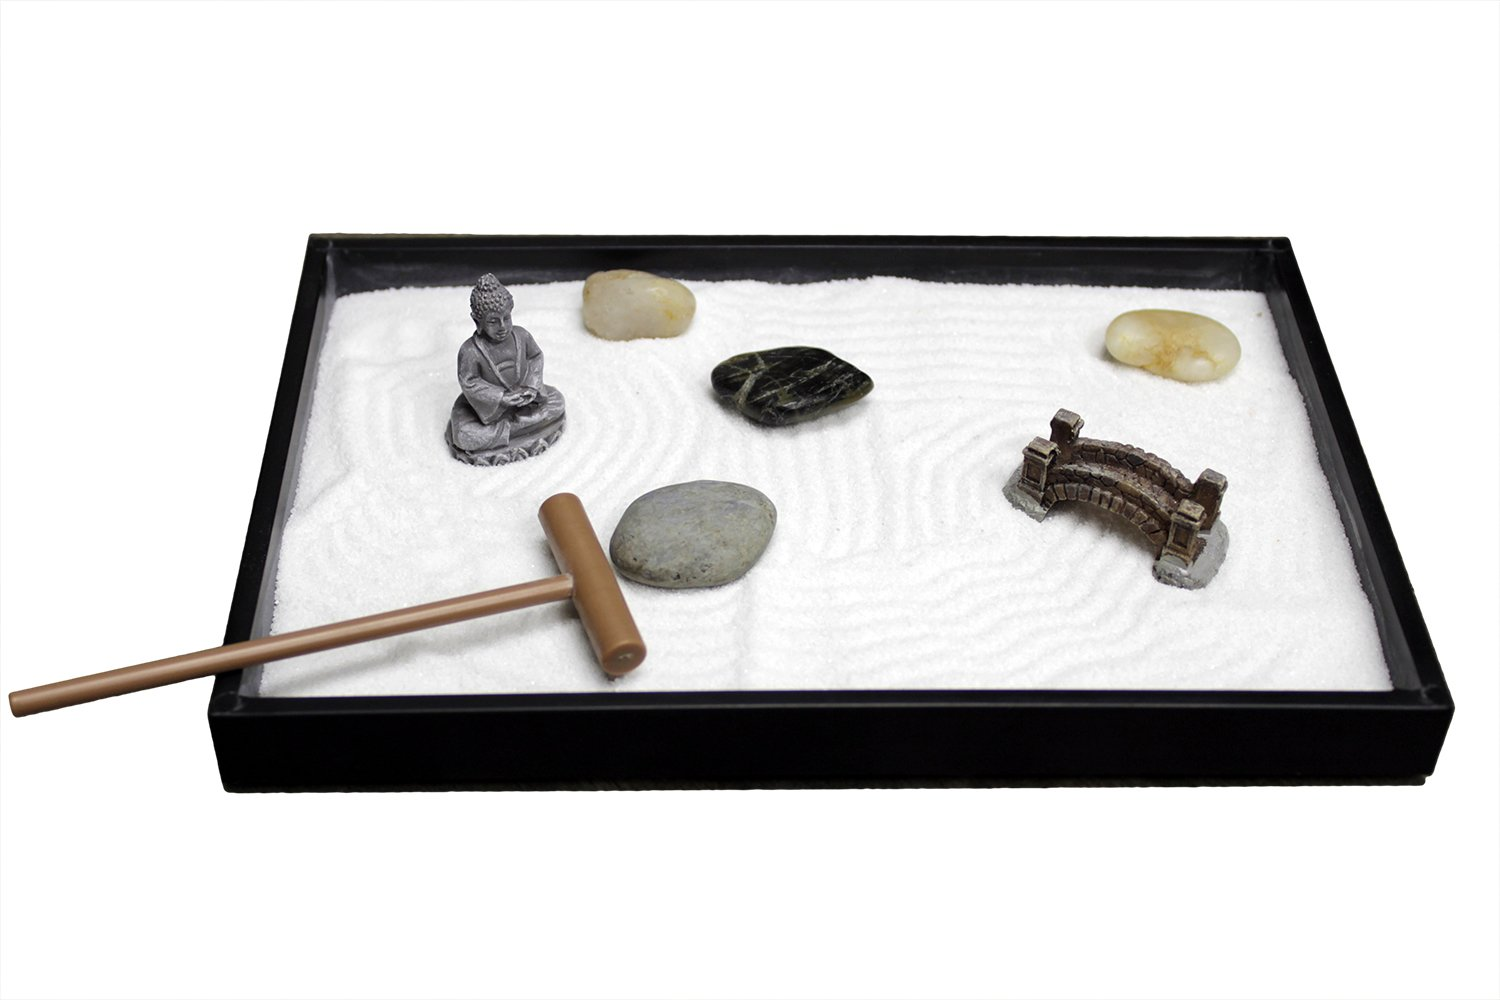 Nature's Mark, Mini Meditation Zen Garden, 8 X 5 inches with Figures and Natural River Rocks